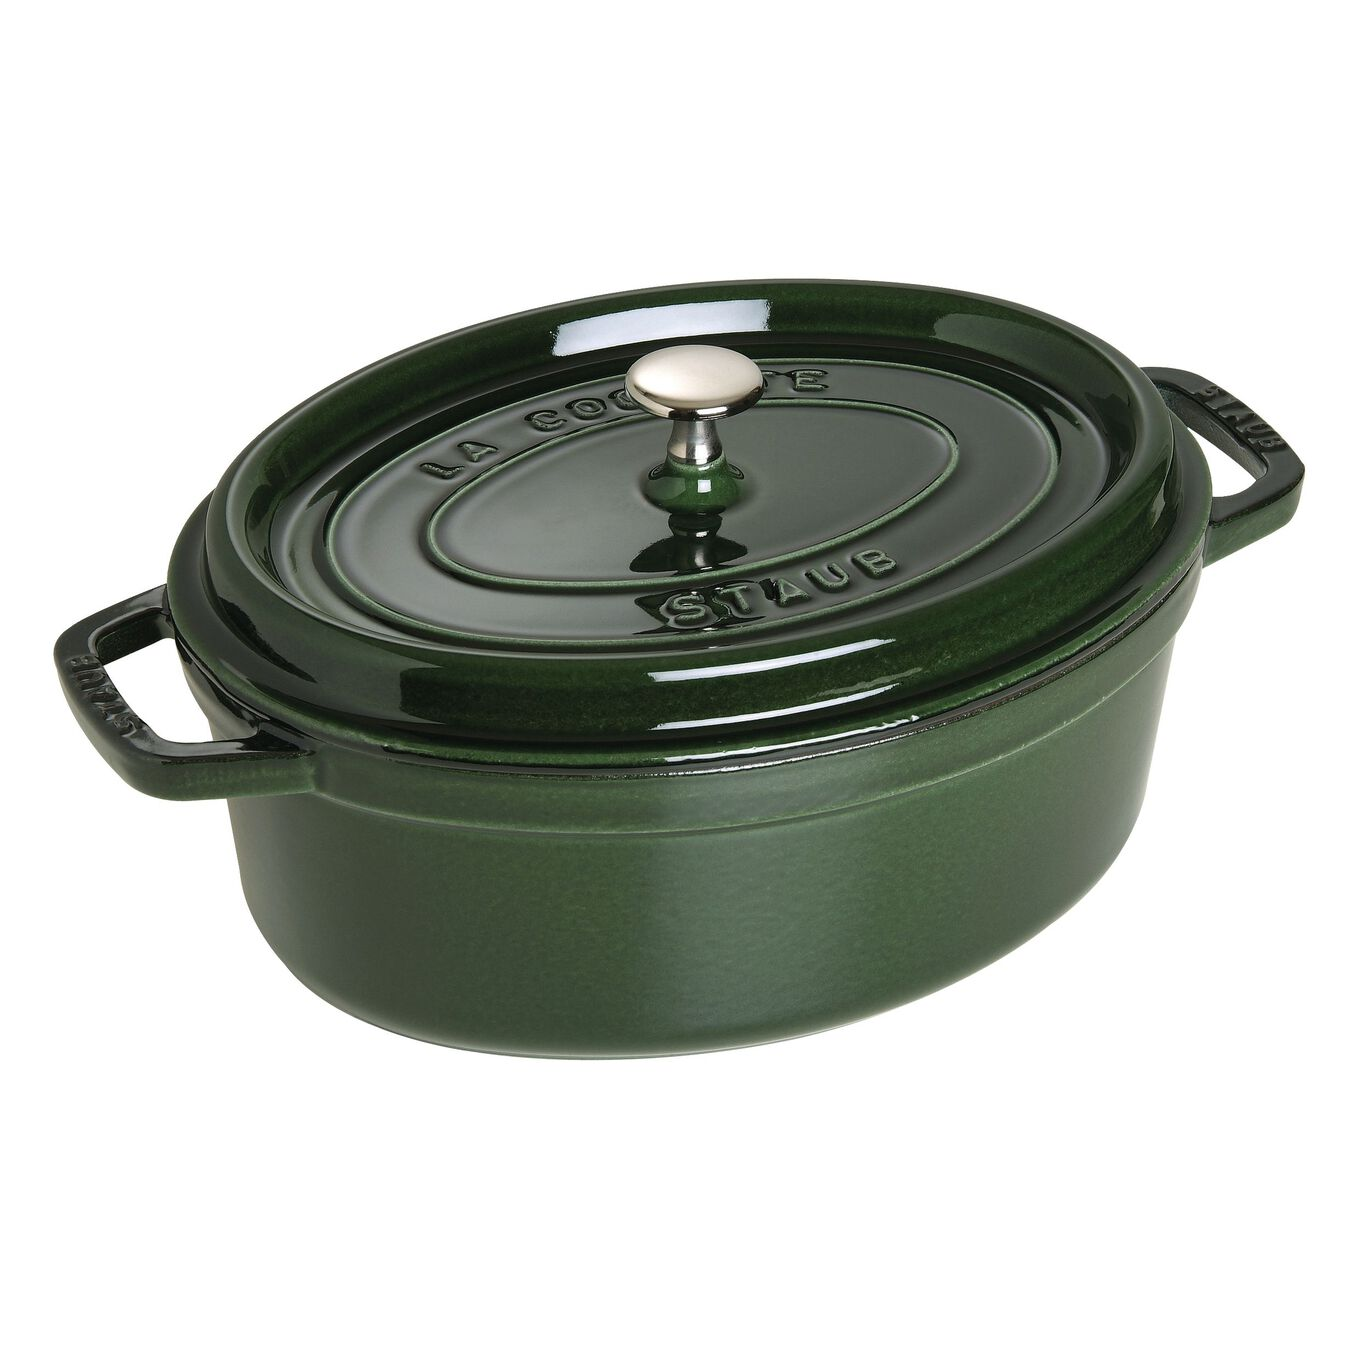 4.25 l Cast iron oval Cocotte, Basil-Green,,large 1